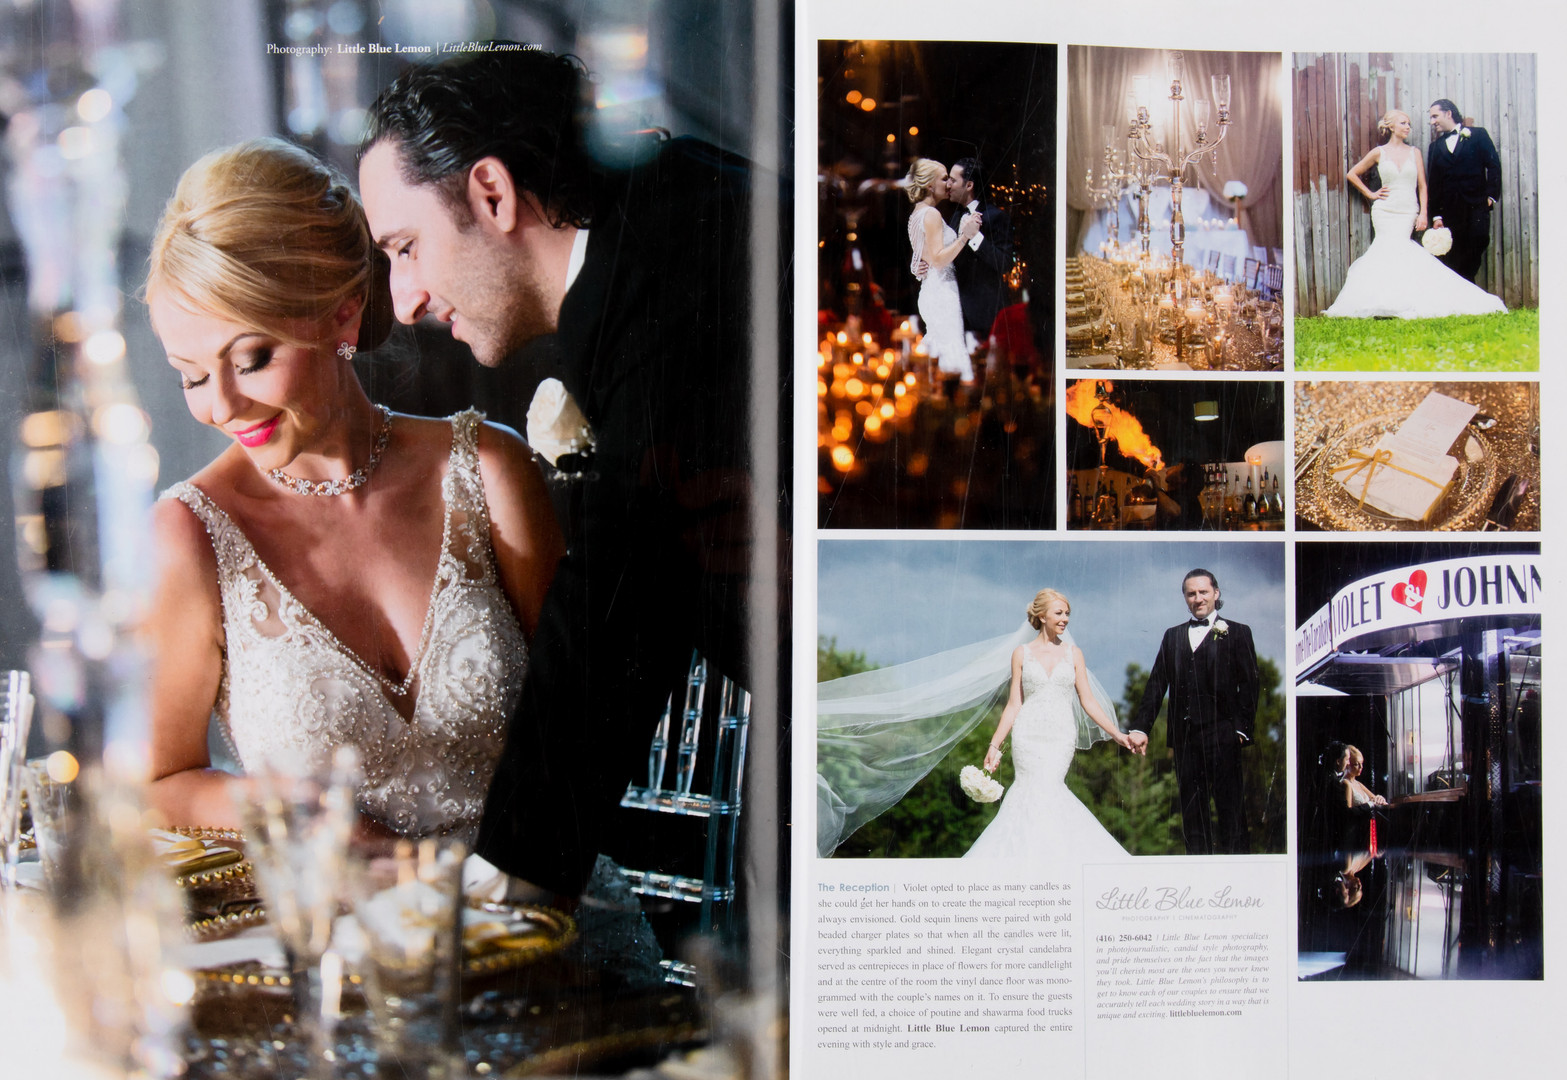 Toronto wedding photographer Little Blue Lemon published wedding spread of bride with two eye colors